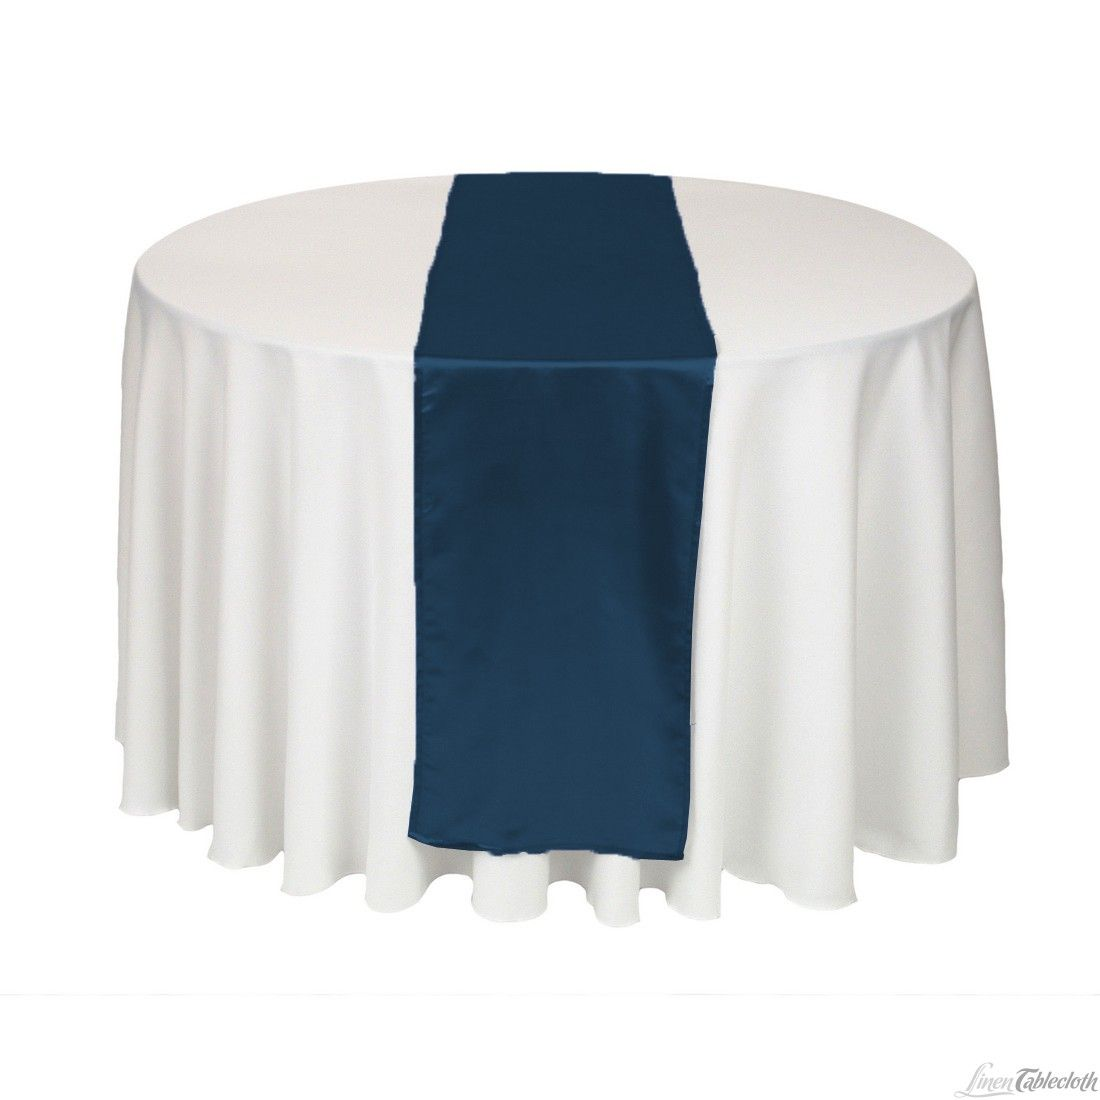 14 In By 108 In Table Runner On 48 In Round Table Wedding